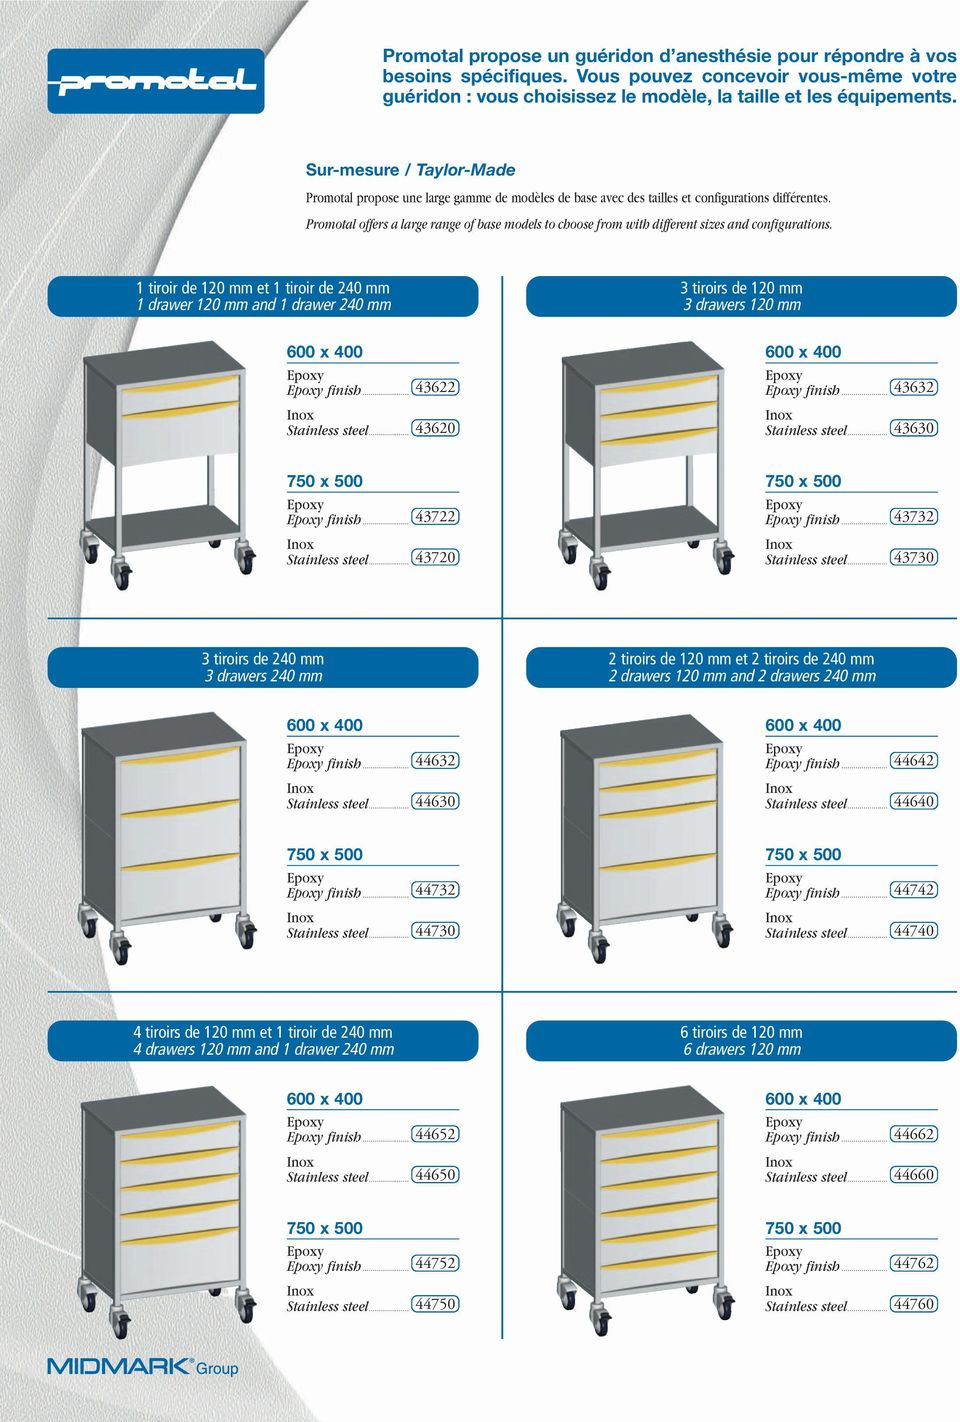 Promotal offers a large range of base models to choose from with different sizes and configurations.